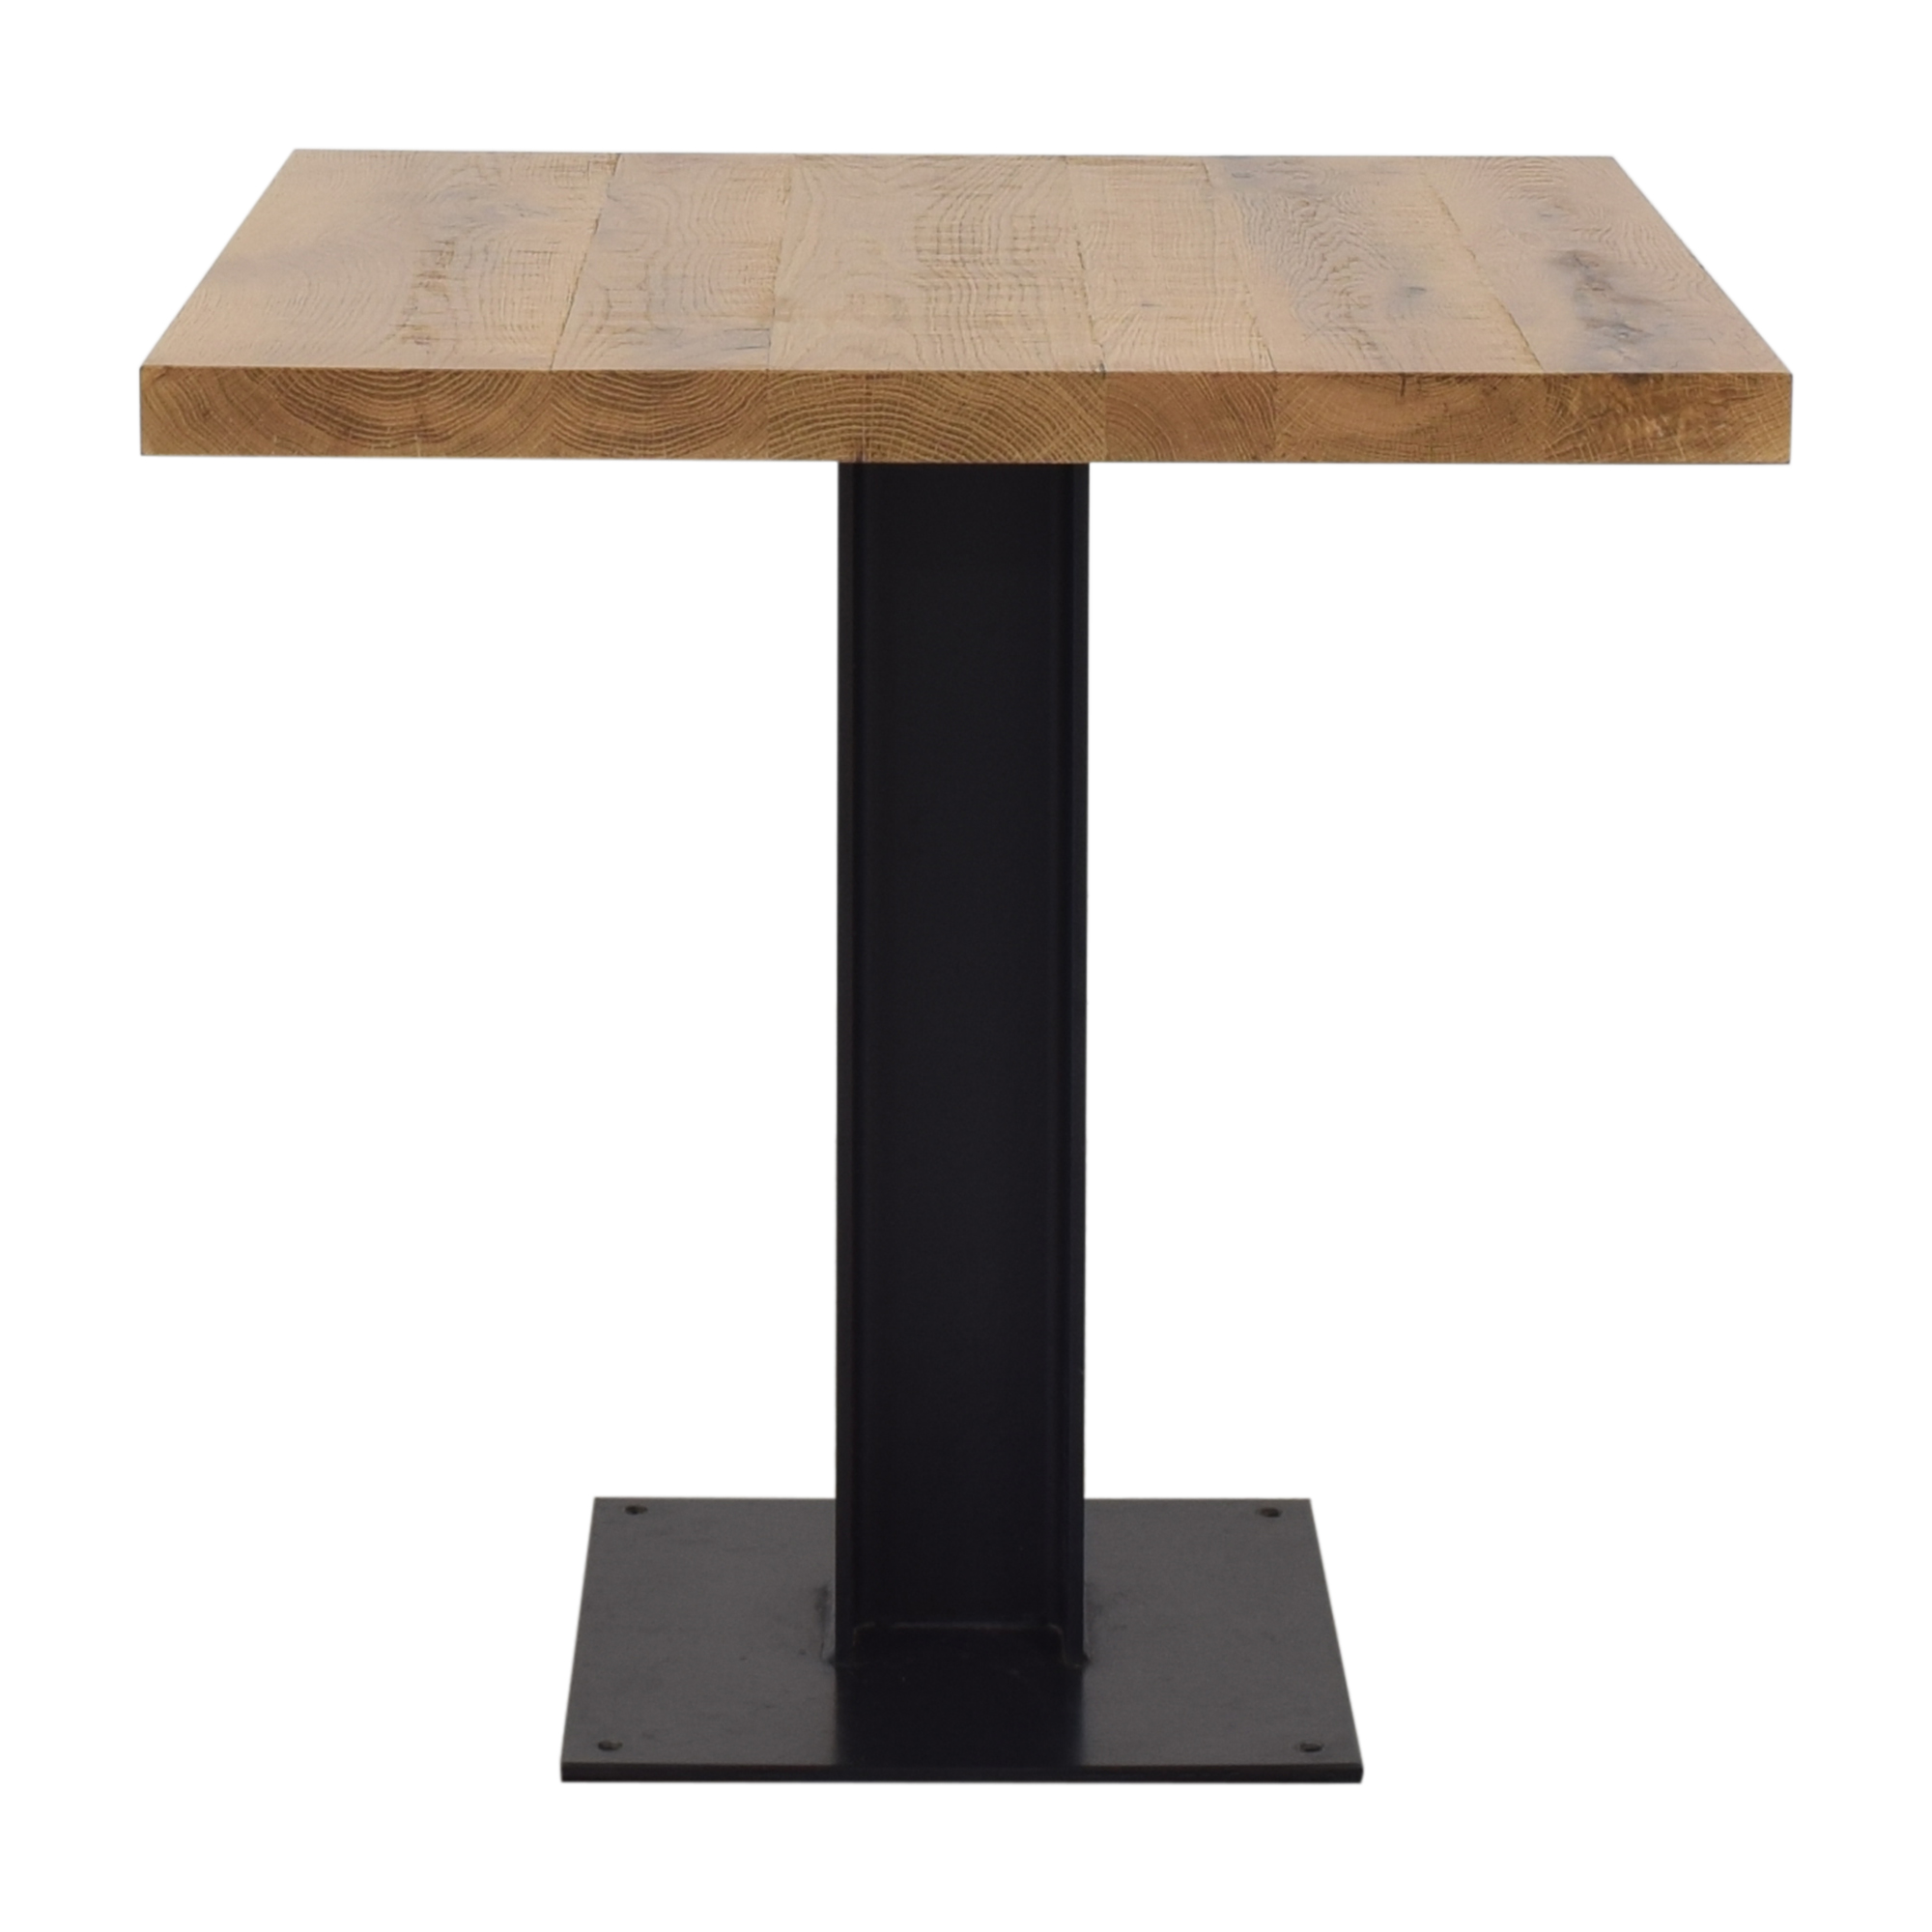 Crow Works Crow Works Fixed I-Beam Square Table price